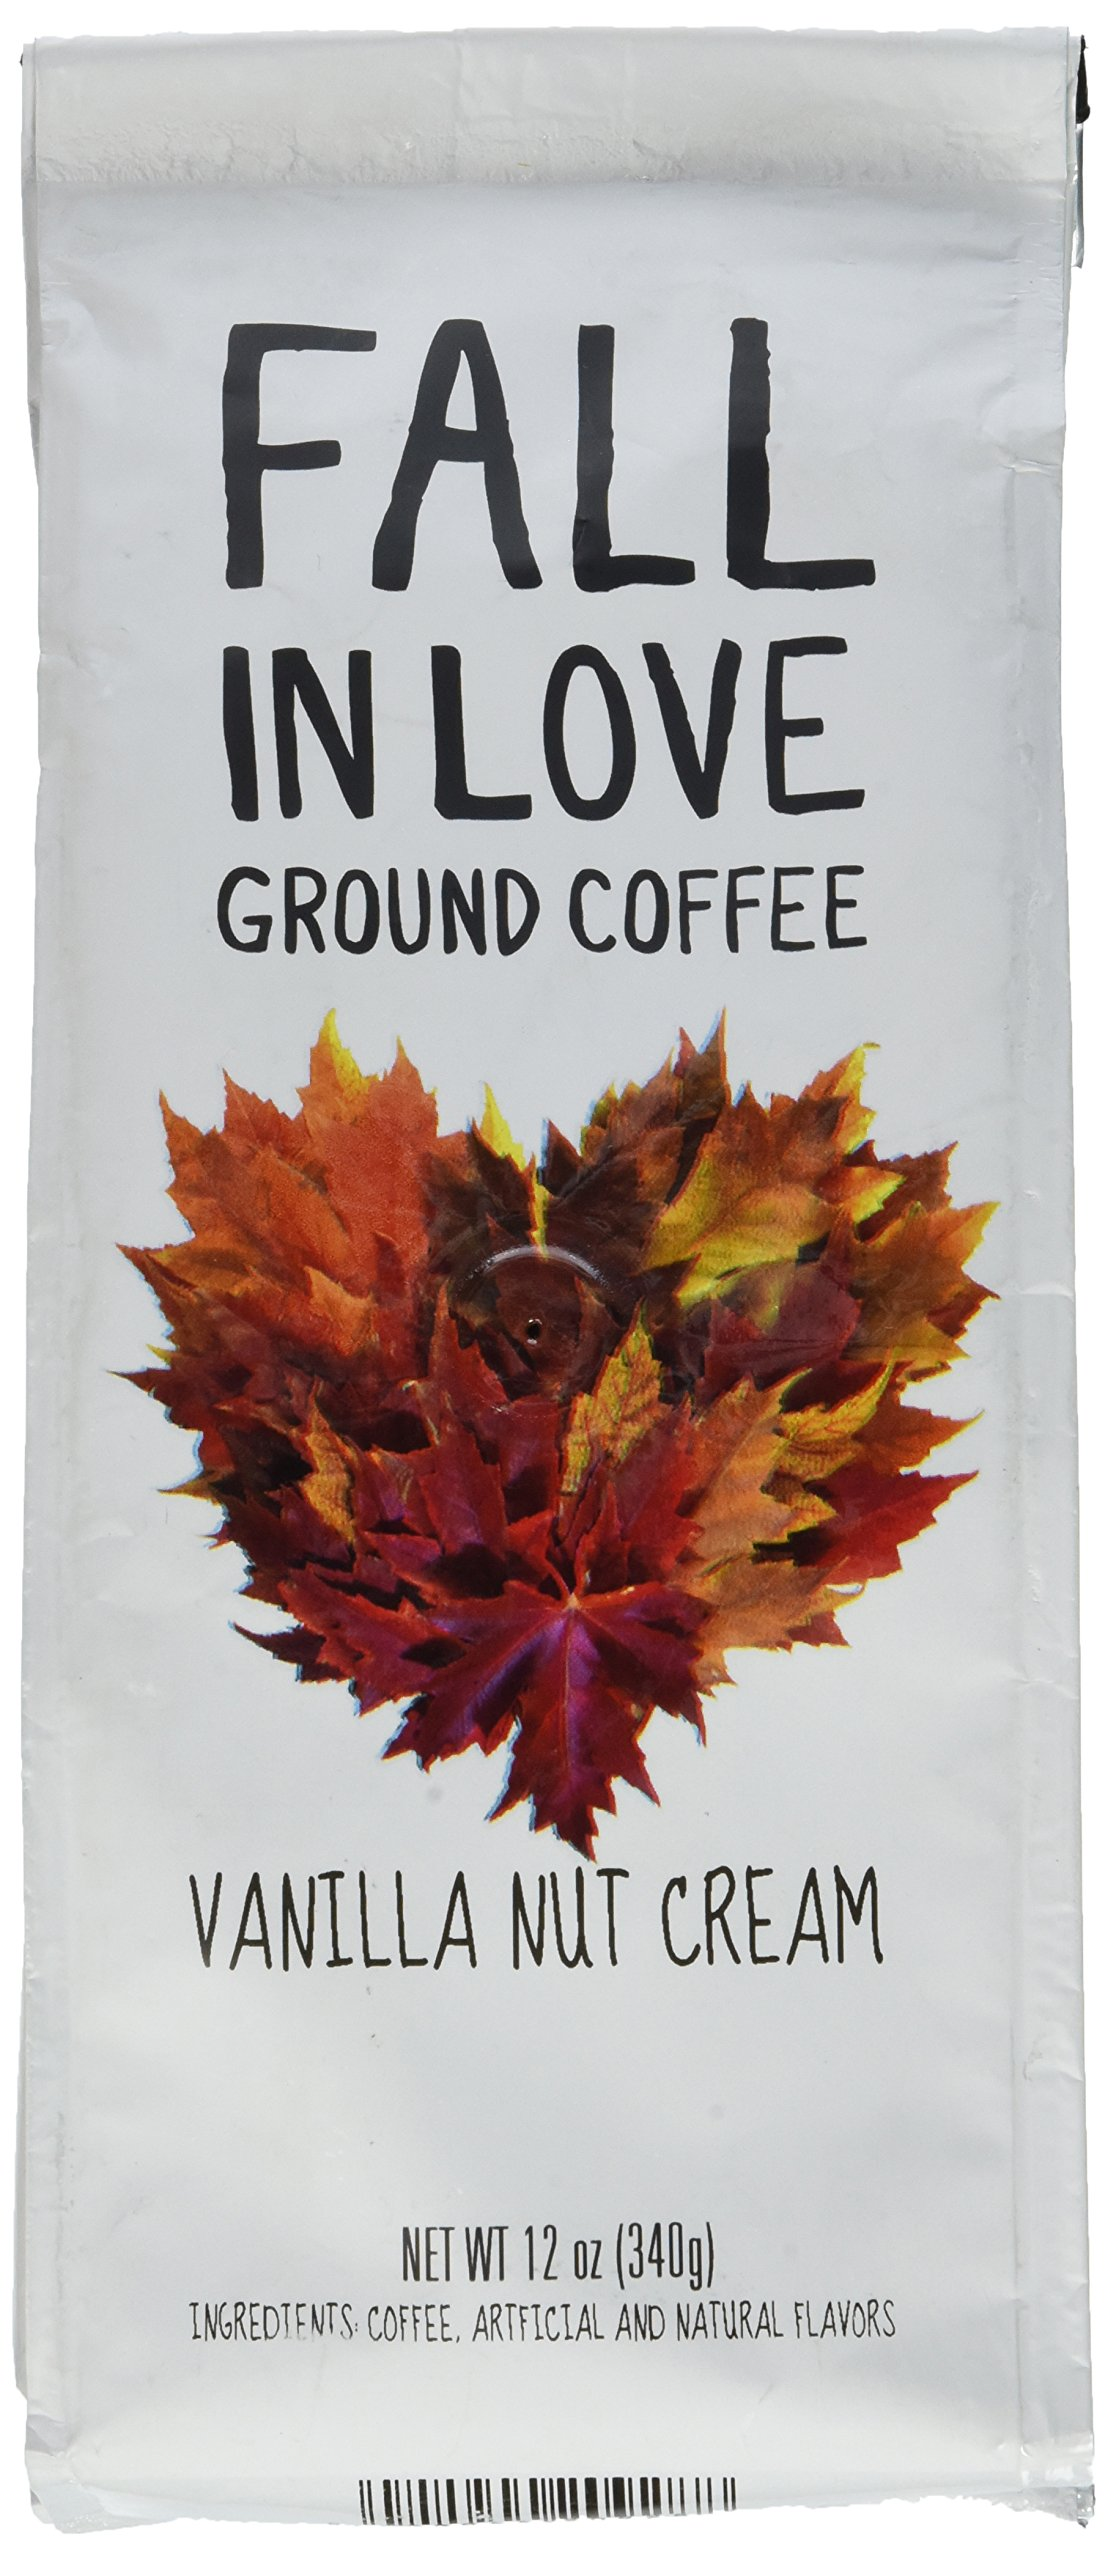 Fall In Love Flavored 12 Oz Ground Coffee (Vanilla Nut Cream, 12 oz) by Paramount Coffee (Image #1)